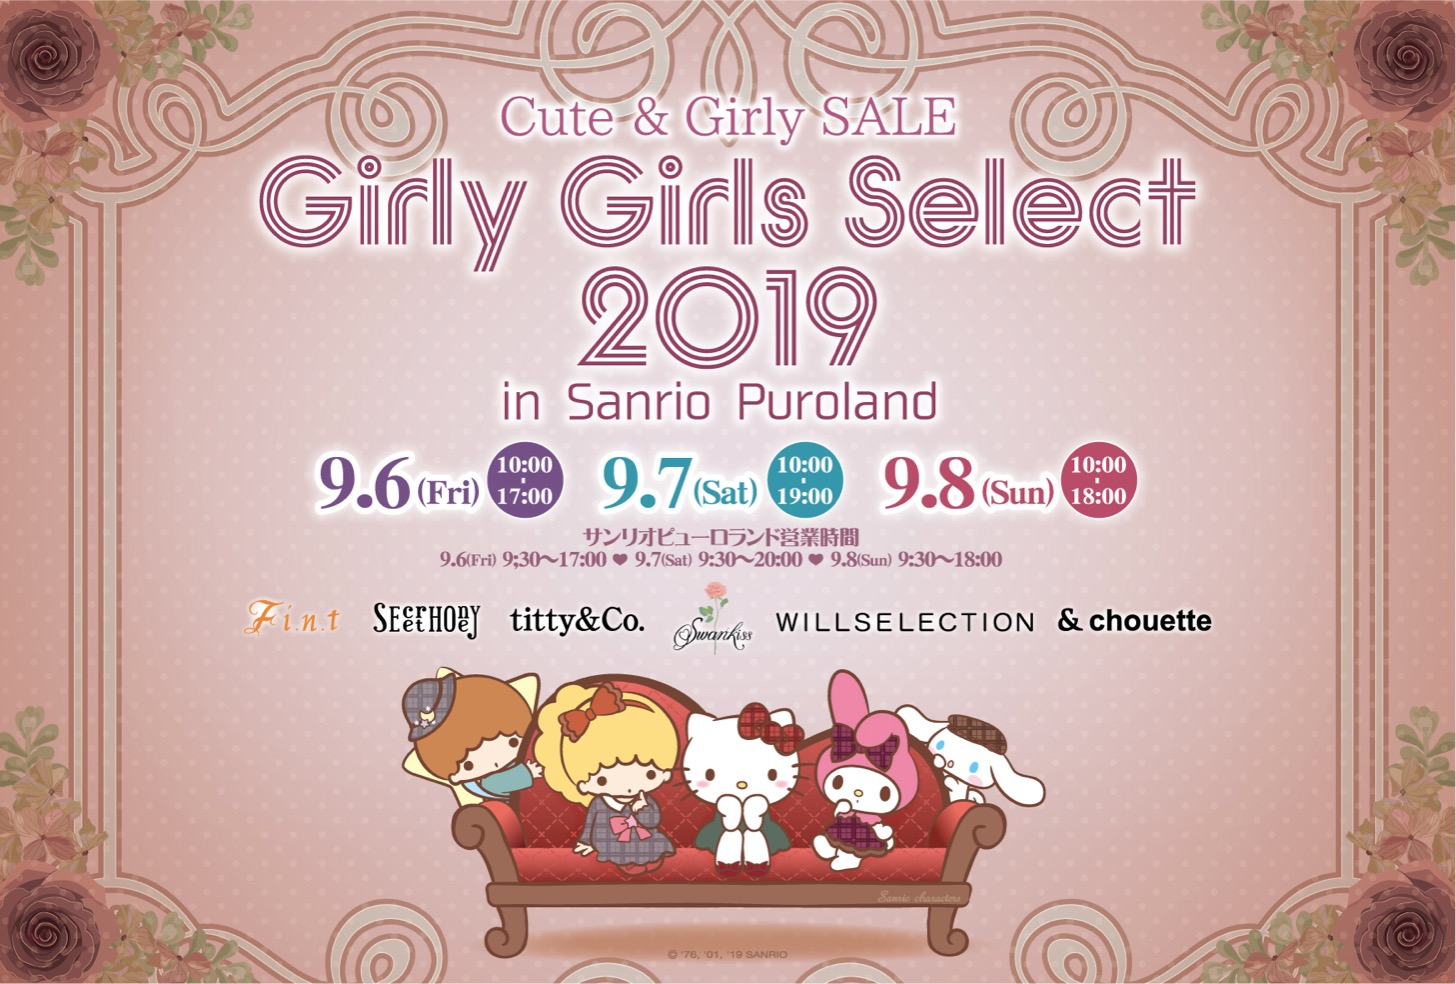 Girly Girls Select 2019 A/W in Sanrio Puroland